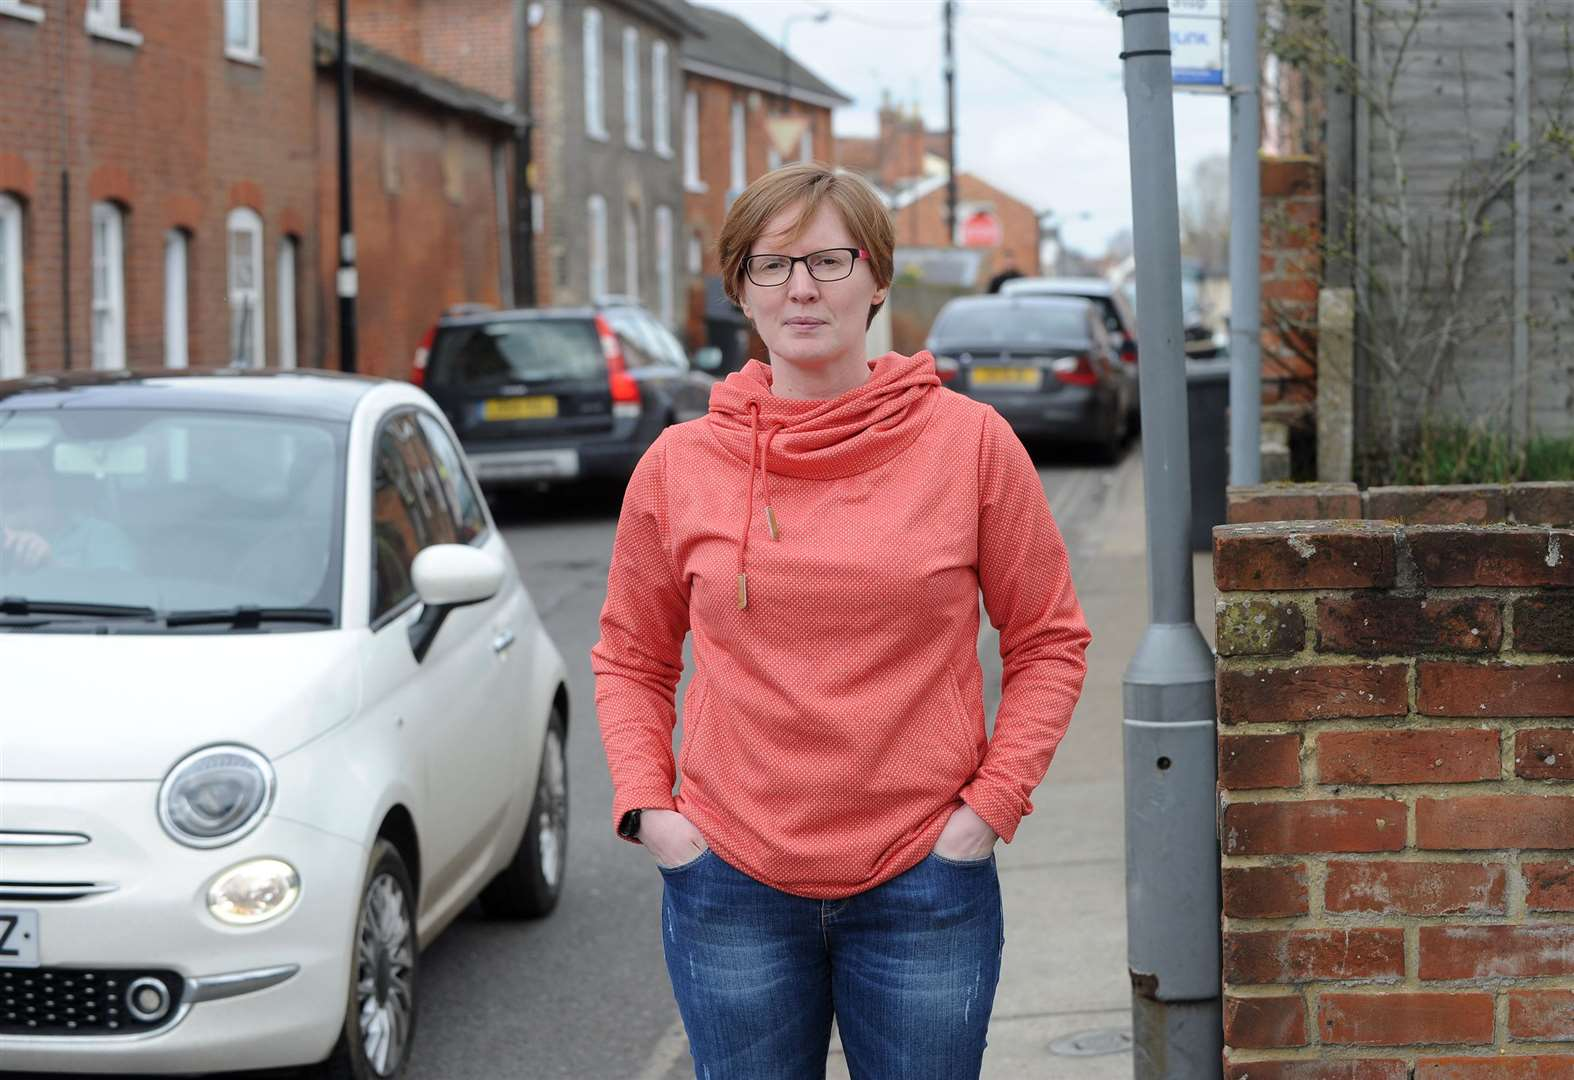 New survey gives damning verdict on road safety at narrow Hadleigh street